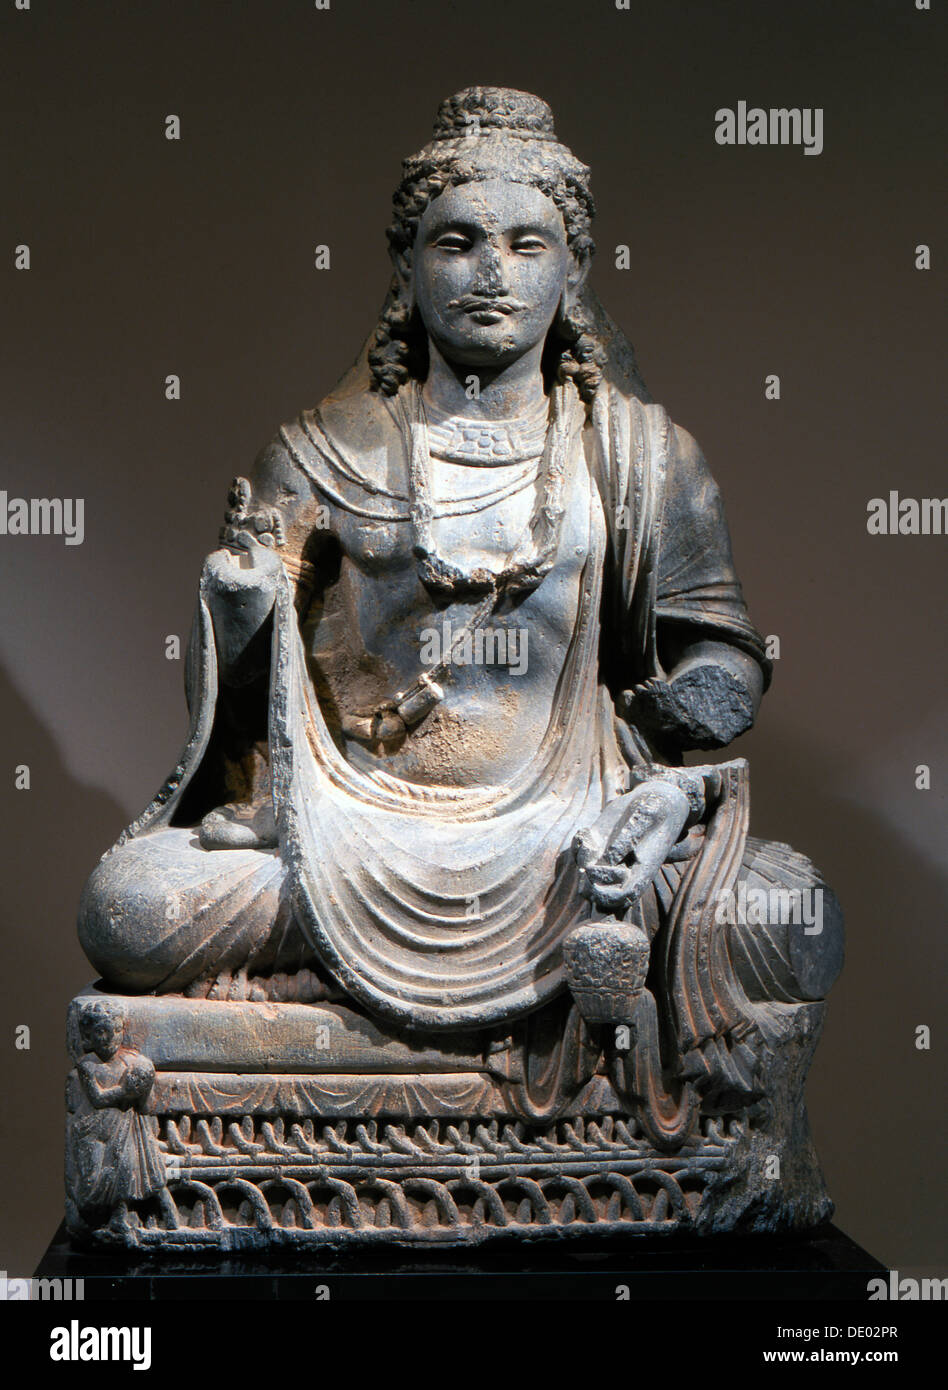 Statue Of Maitreya The Buddha Of The Future From Gandhara Kushan Stock Photo Alamy